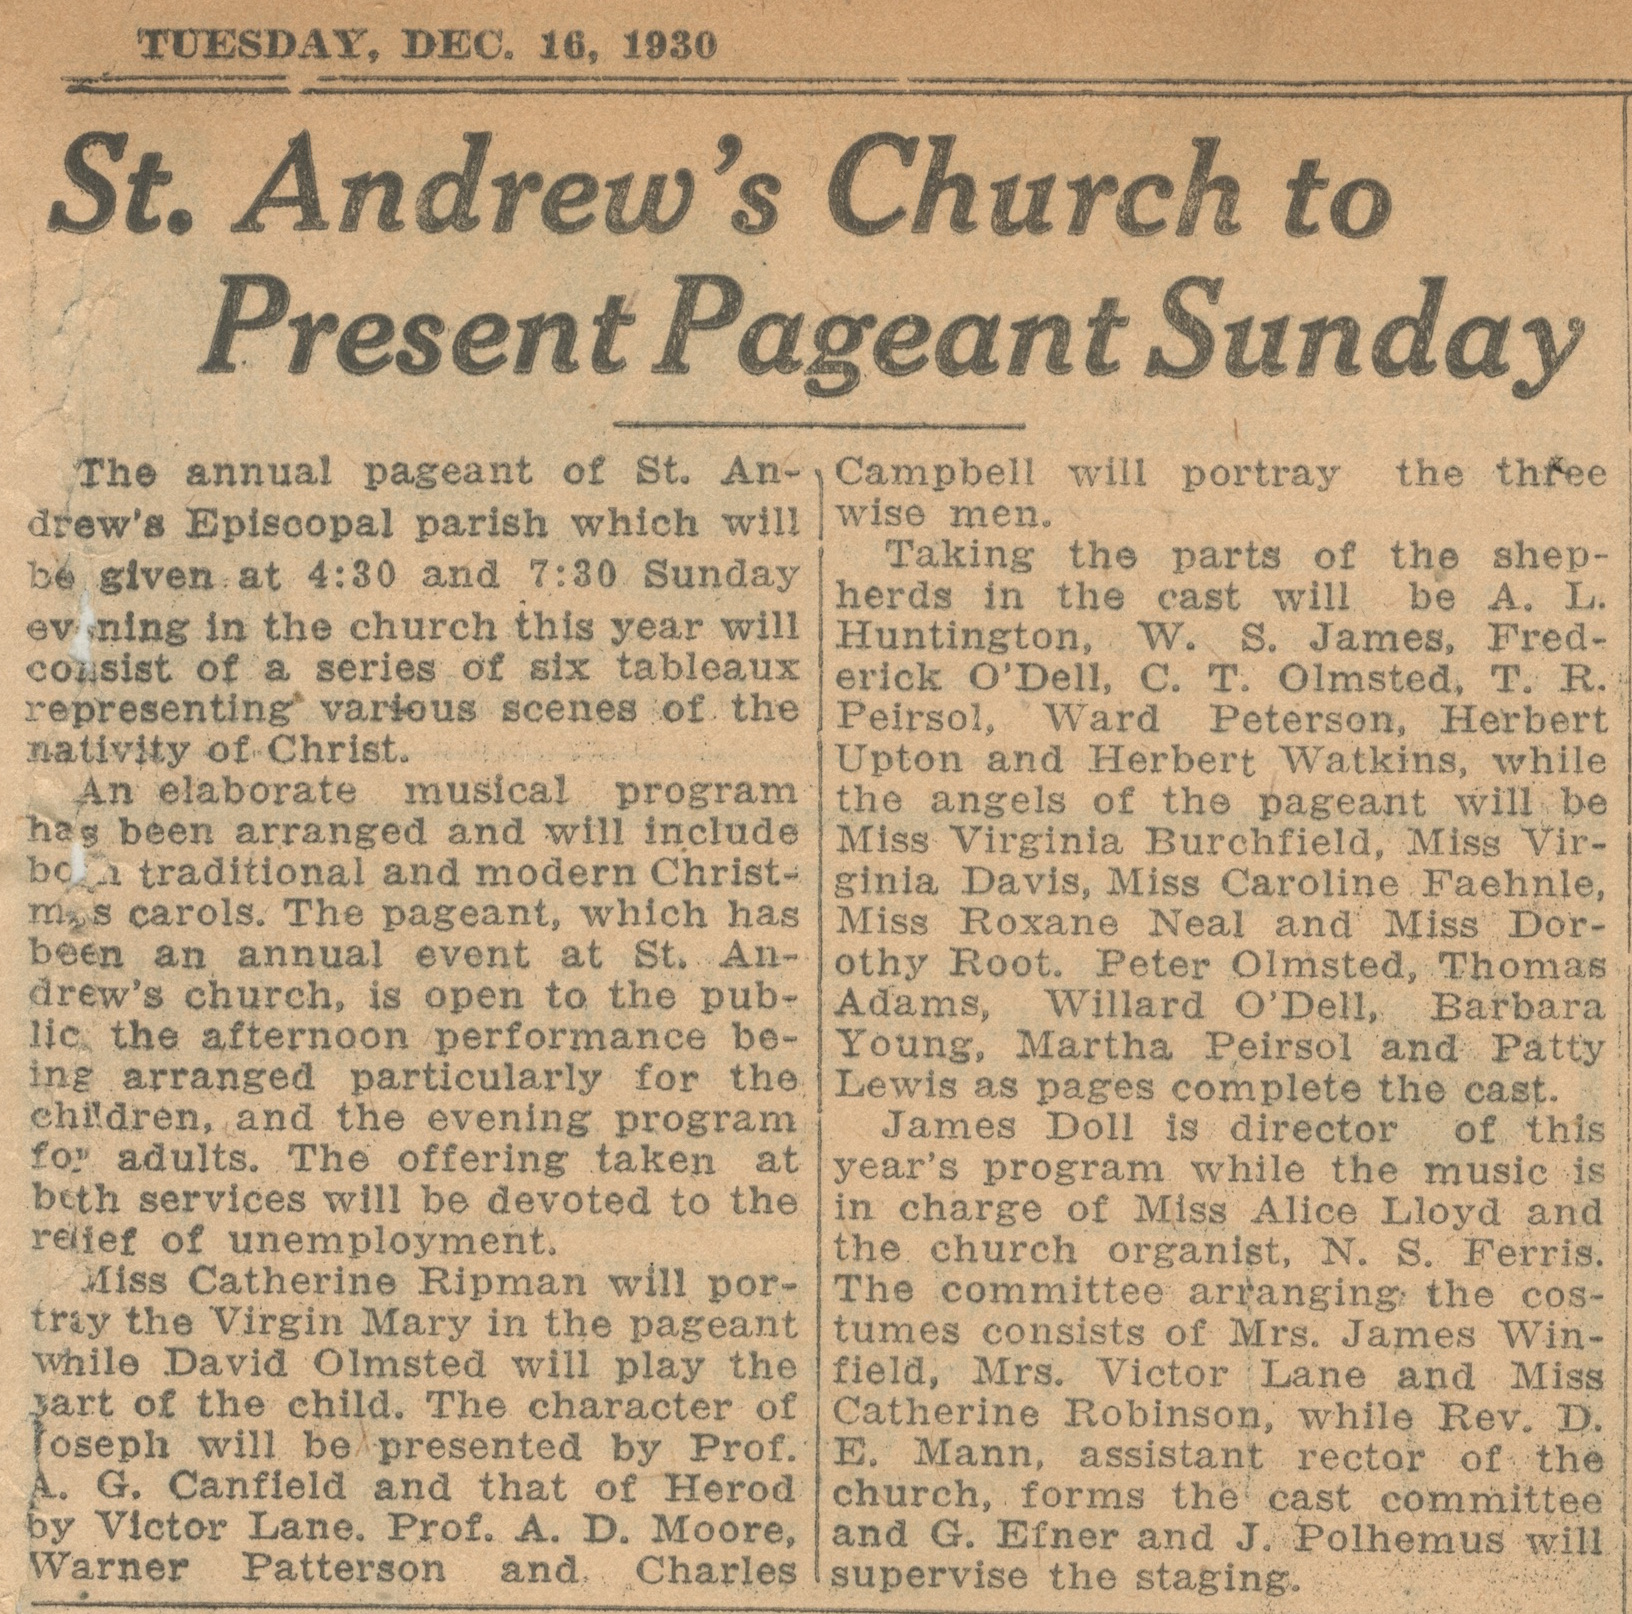 St. Andrew's Church To Present Pageant Sunday image